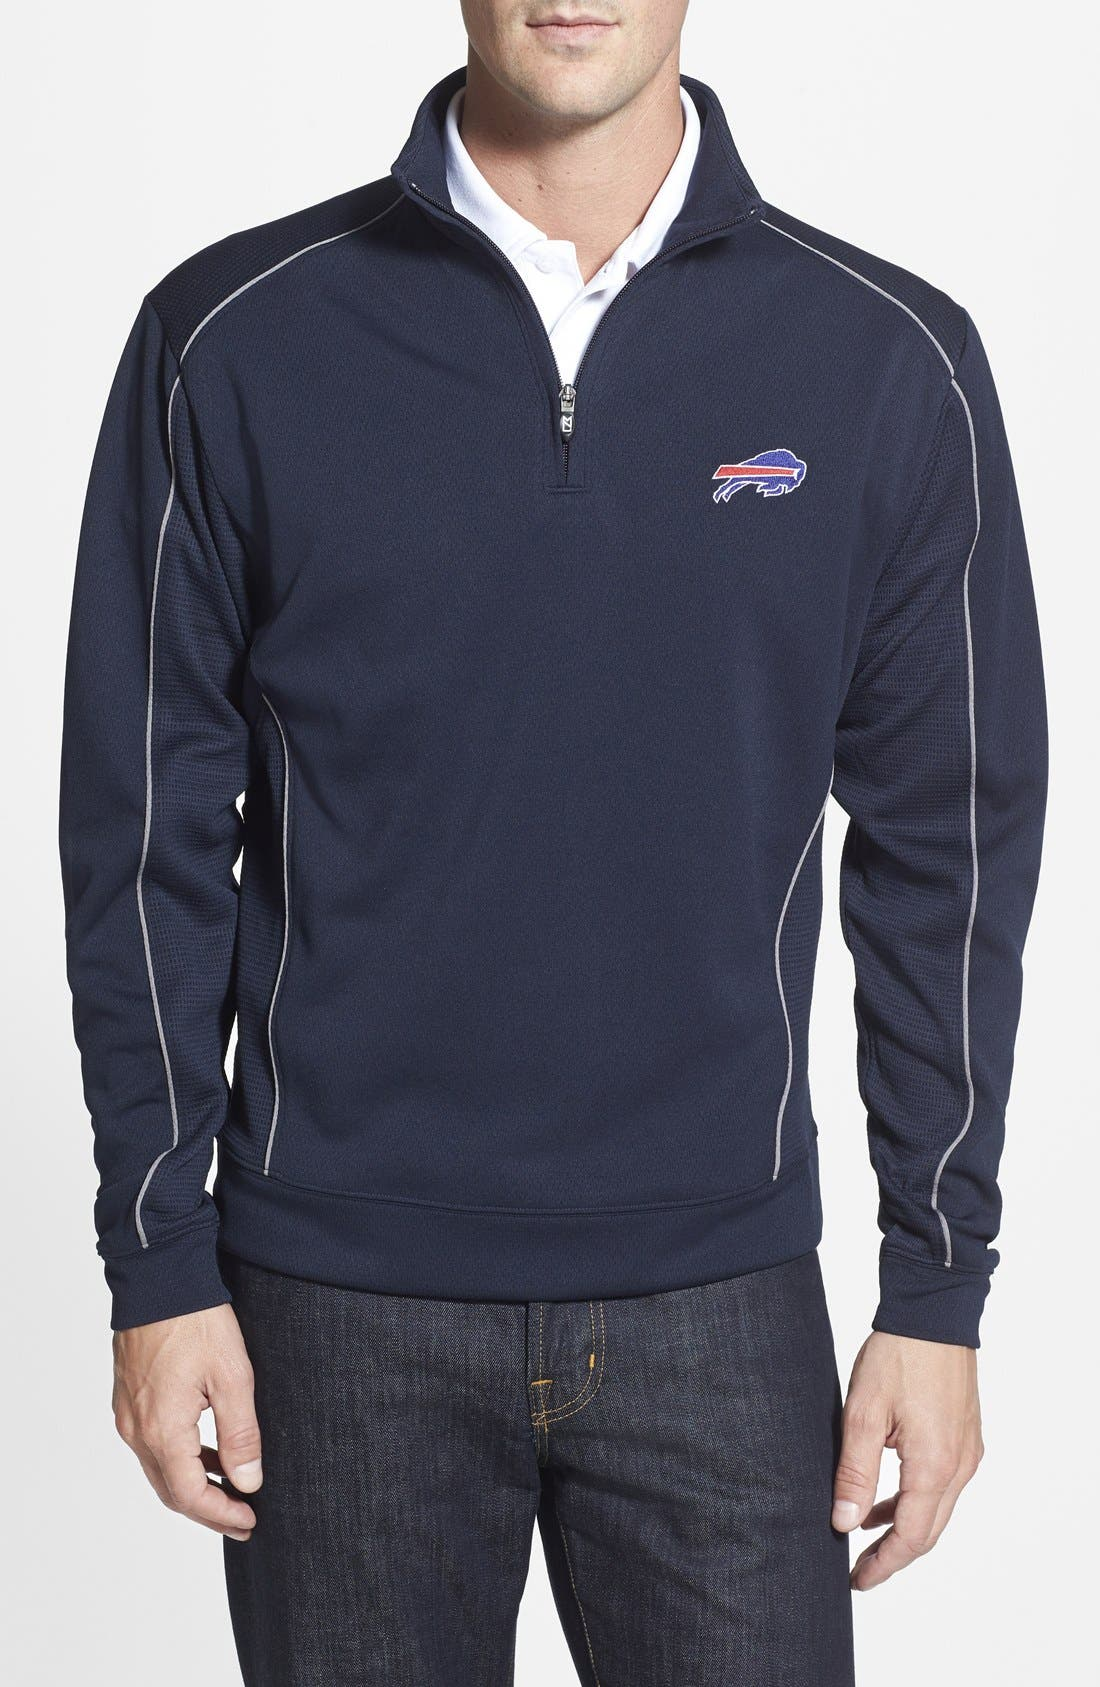 Buffalo Bills - Edge DryTec Moisture Wicking Half Zip Pullover,                             Main thumbnail 1, color,                             420